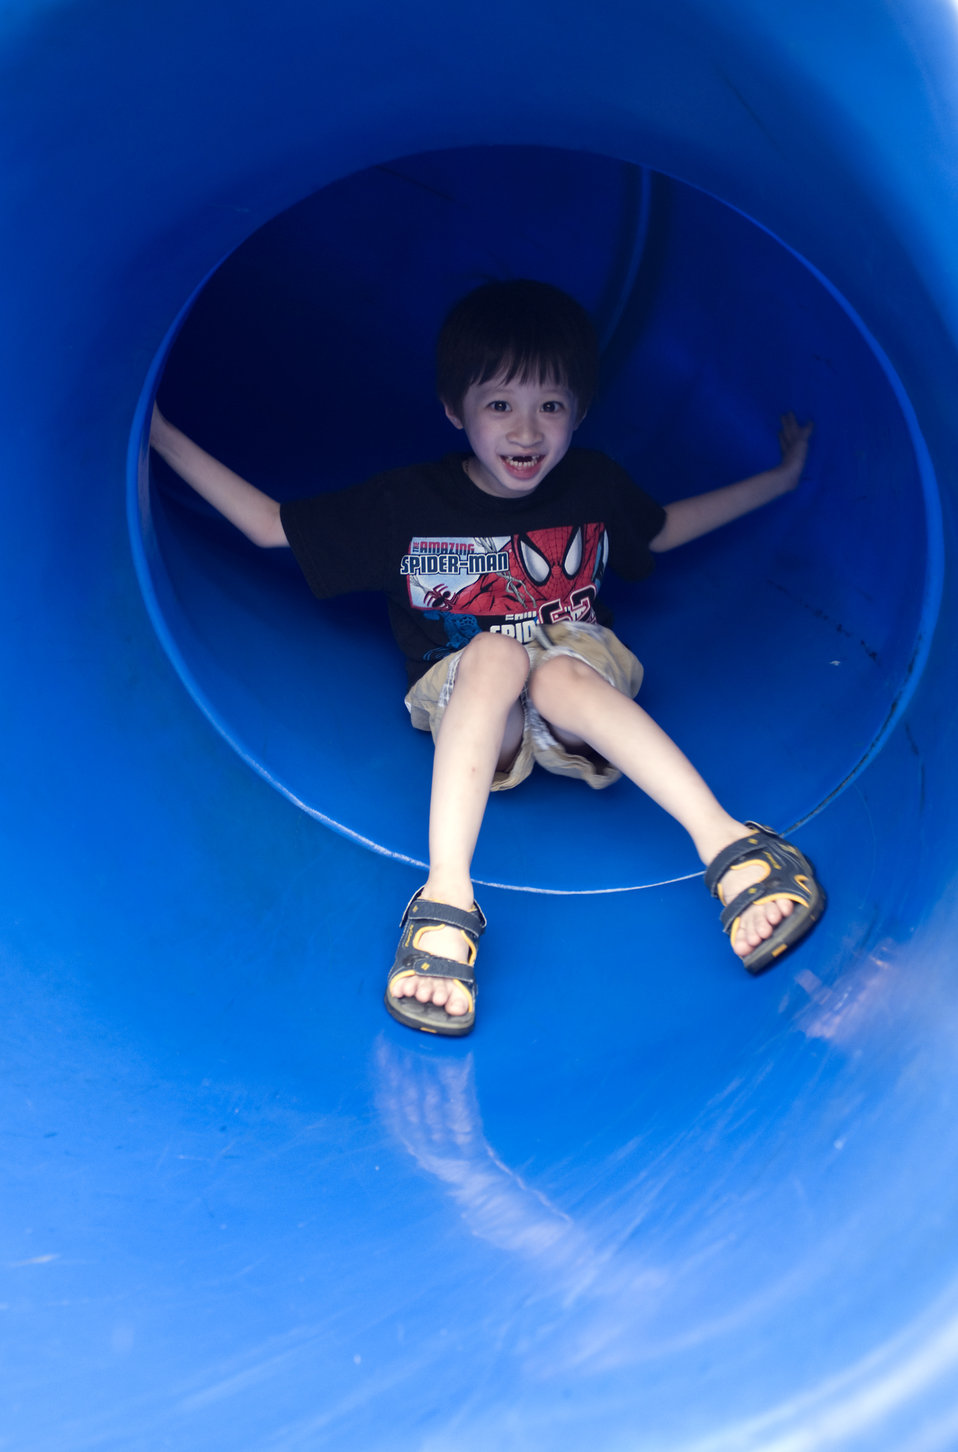 Under the watchful eye of his mother, this young boy was taking a trip down a bright blue slide at a neighborhood playground. Note that he w